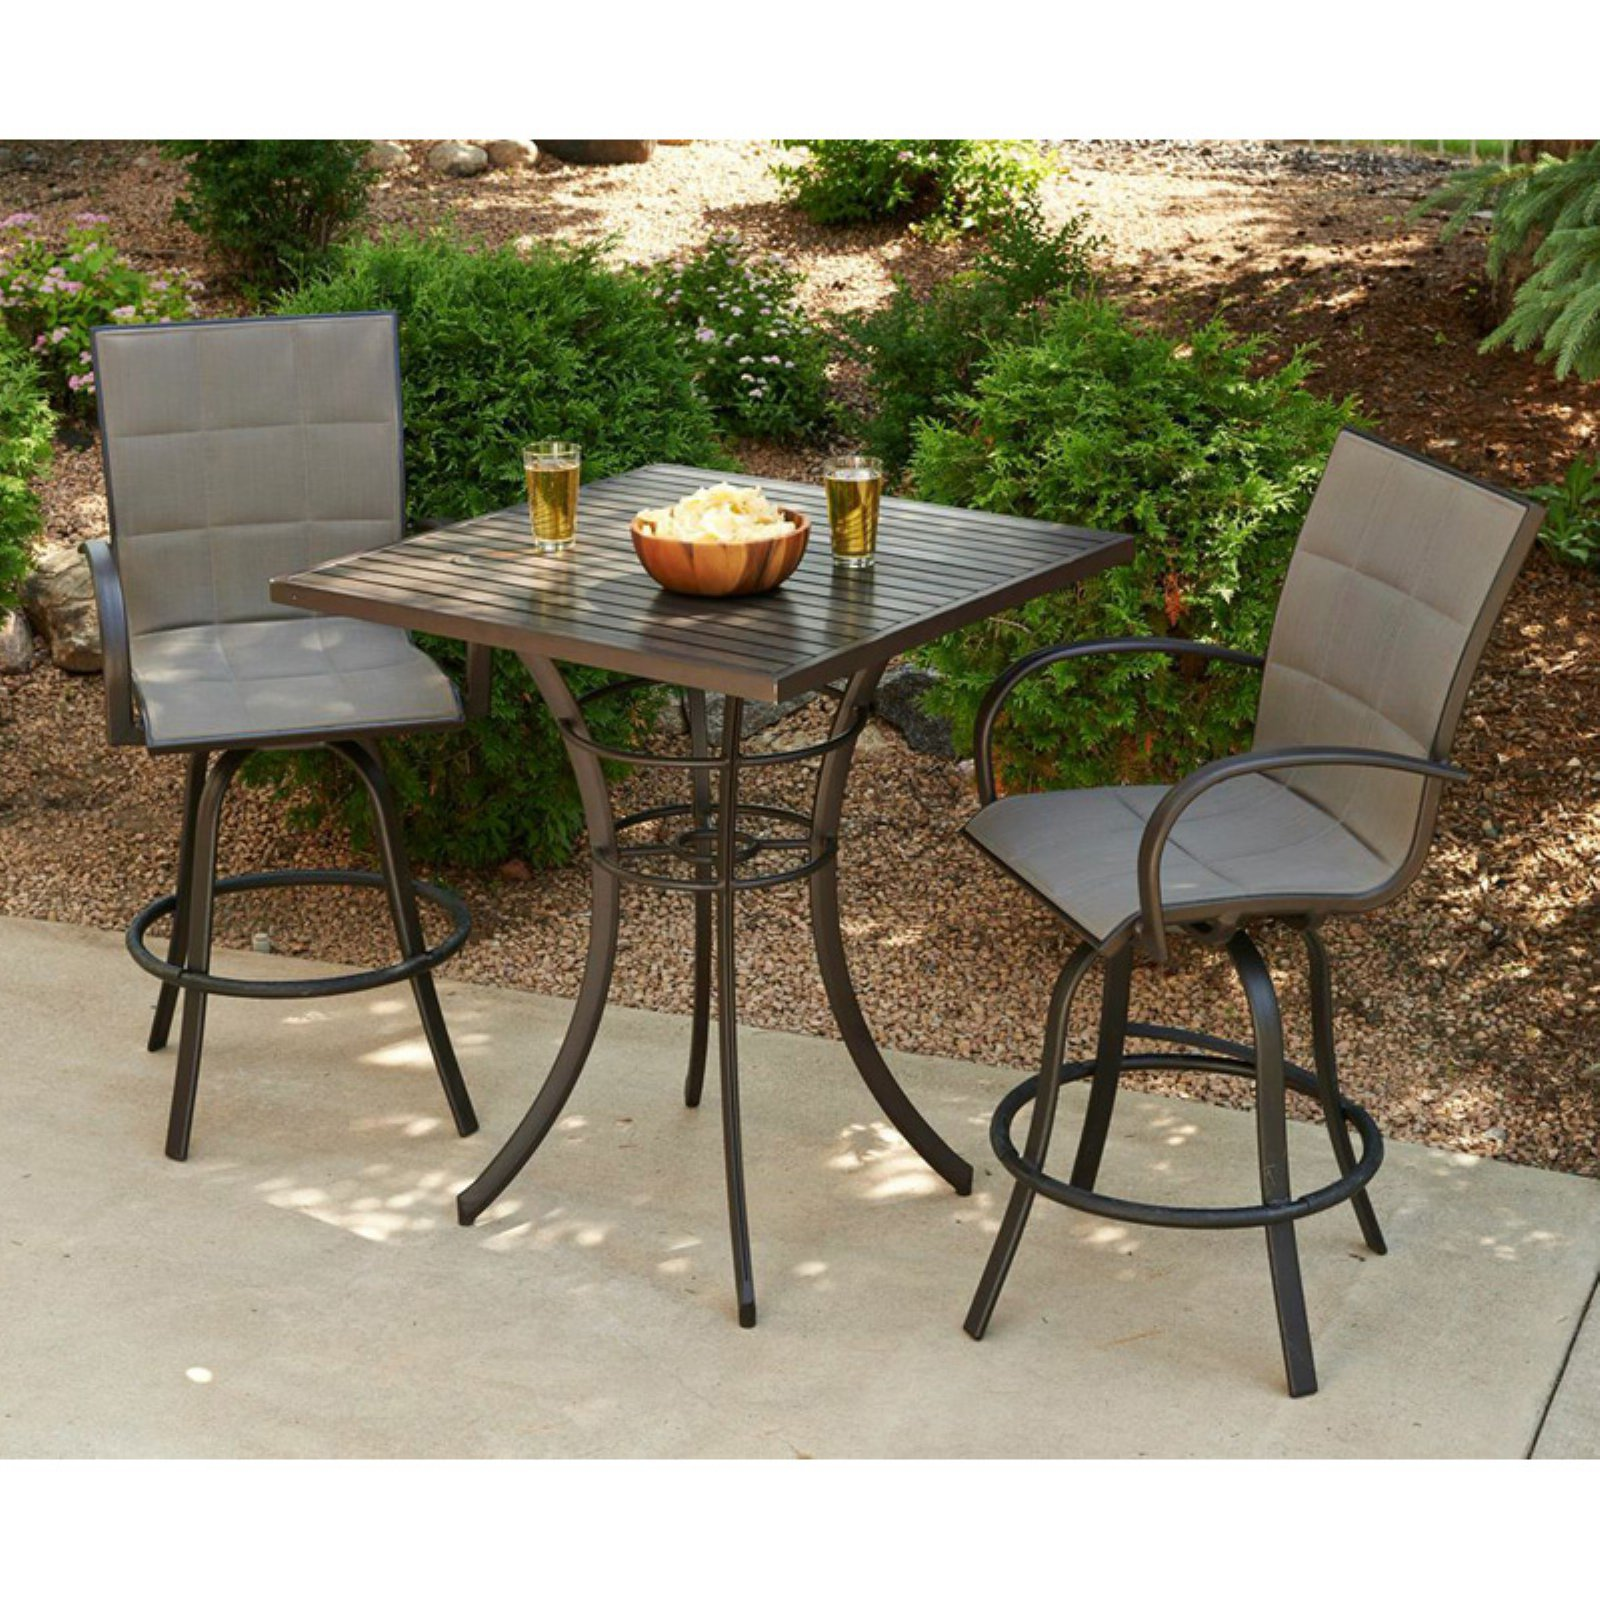 Outdoor GreatRoom Empire 3 Piece Pub Table Set